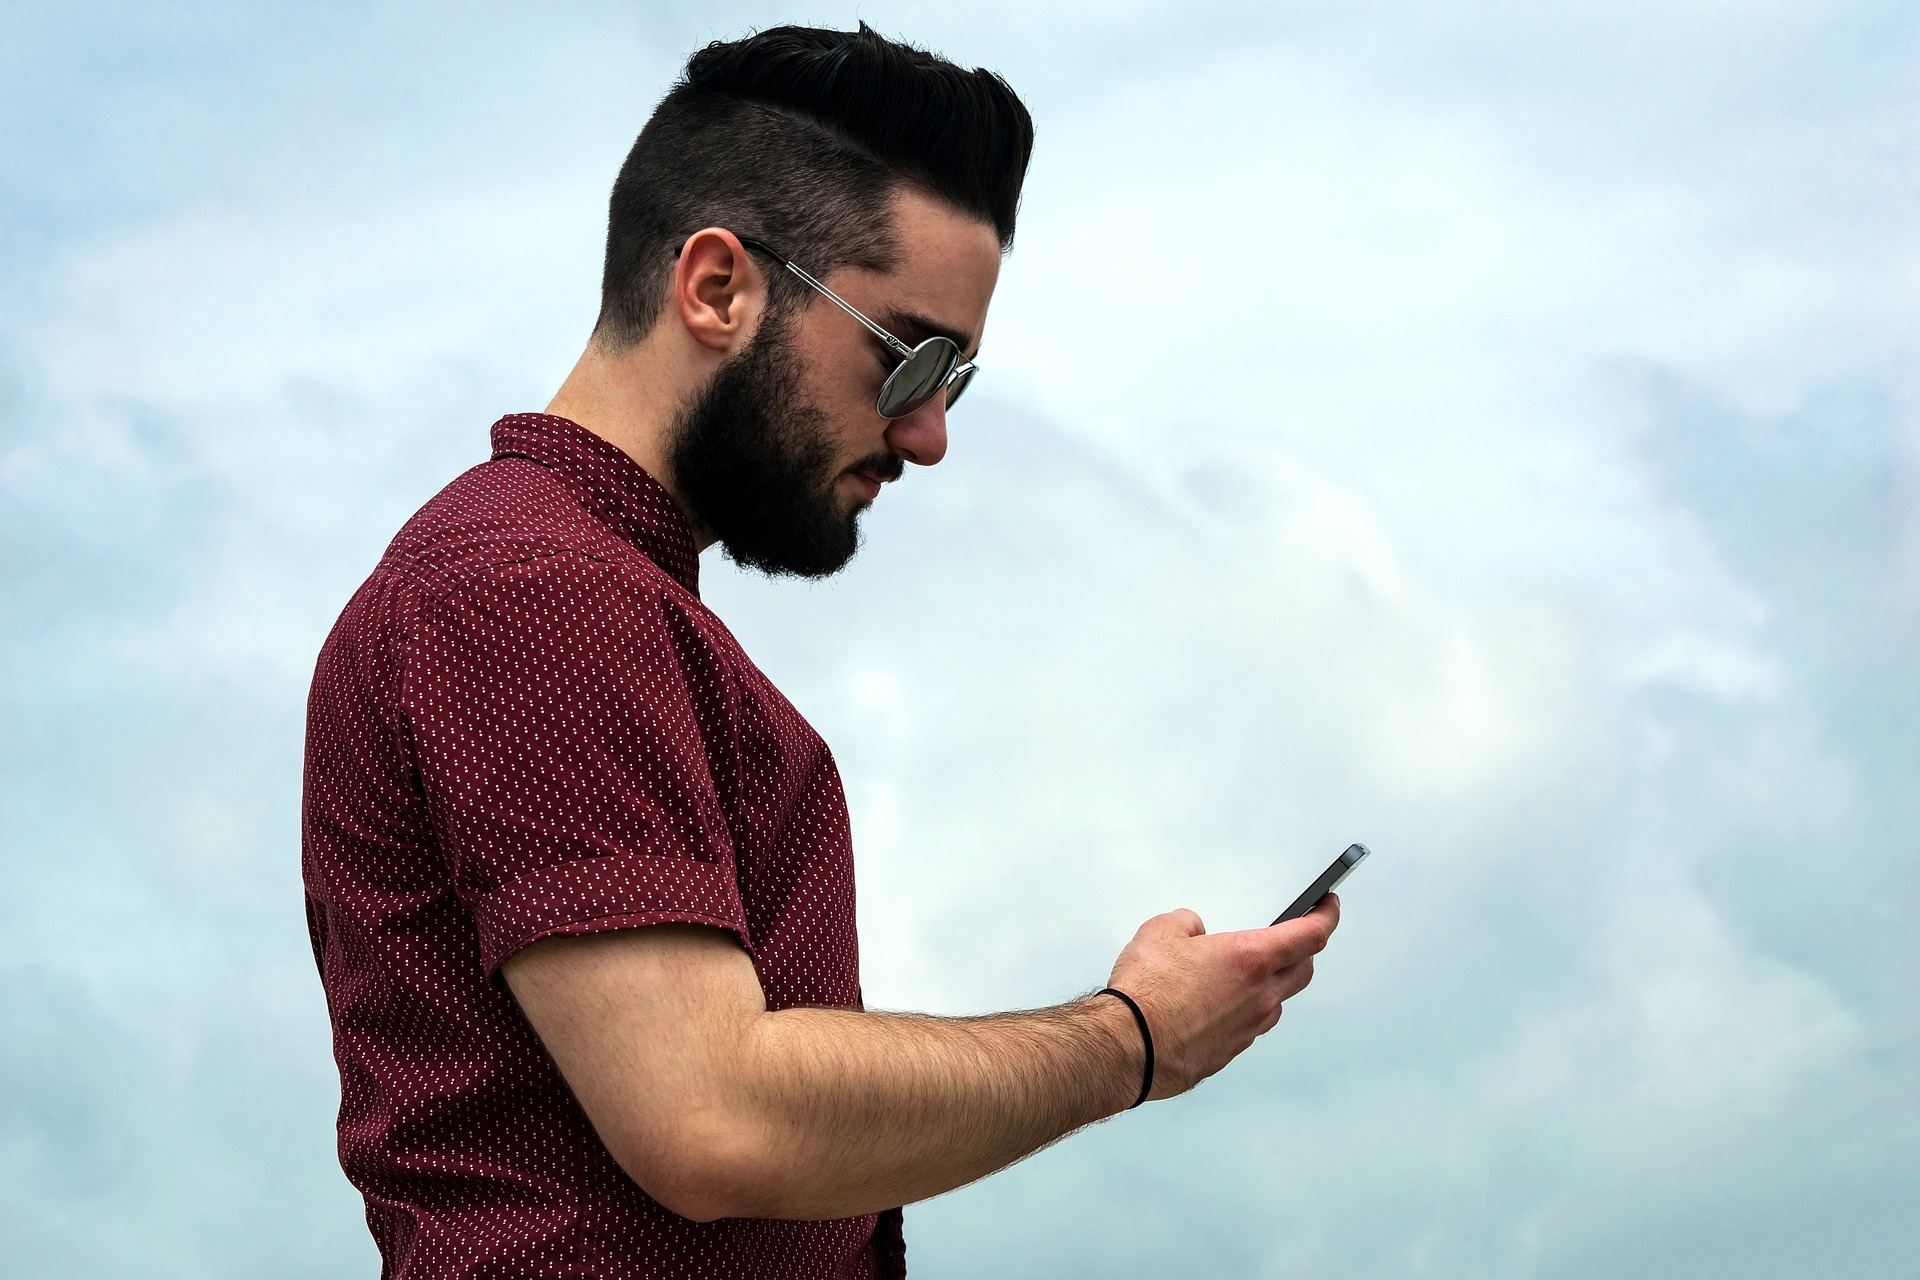 man texting on his phone